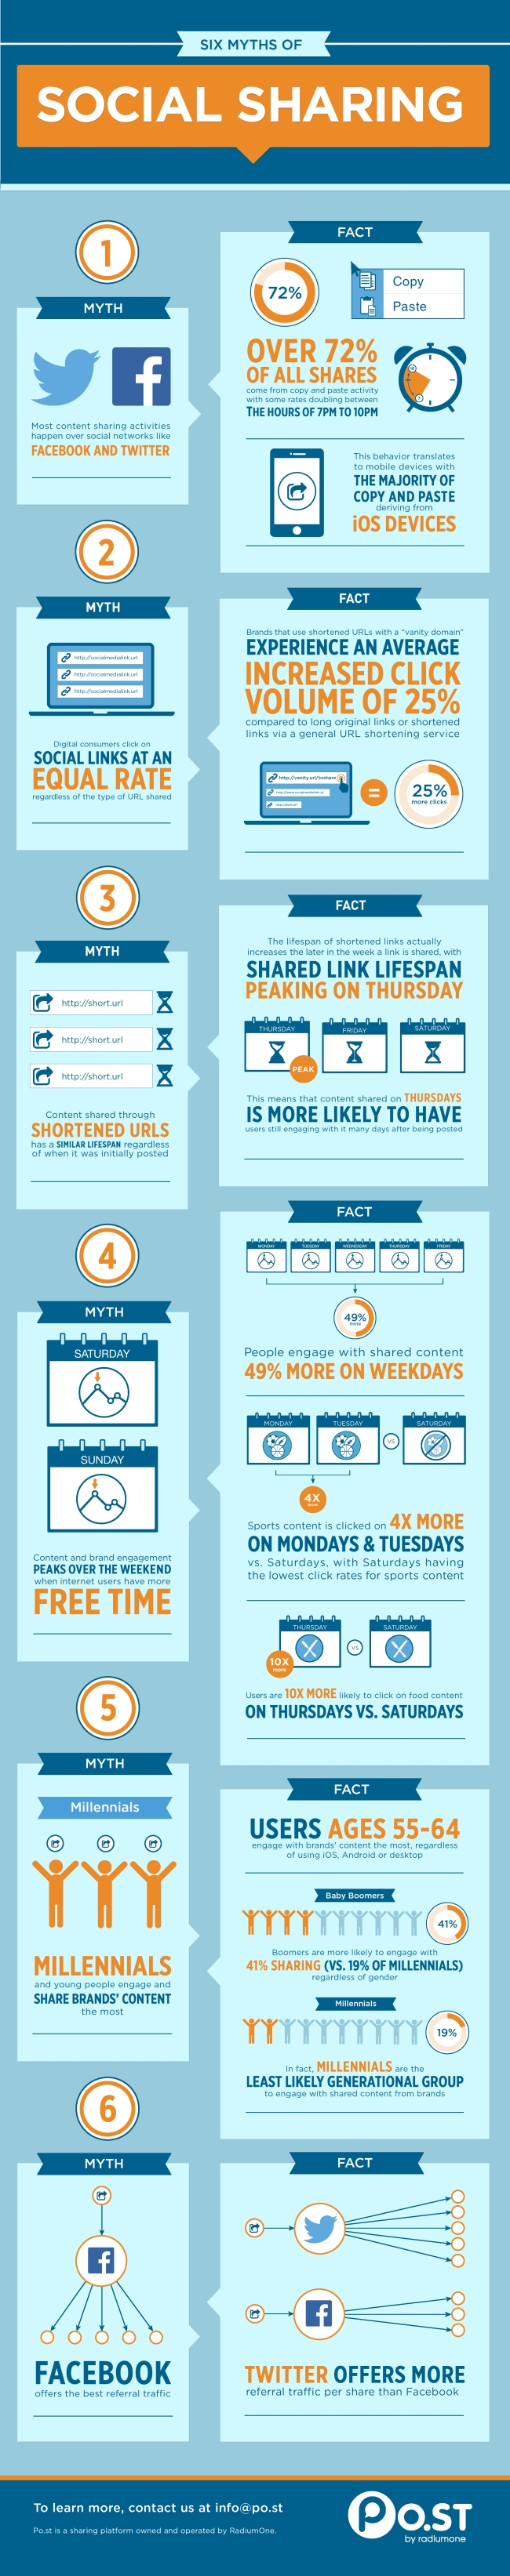 6-myths-of-social-media-sharing-infographic